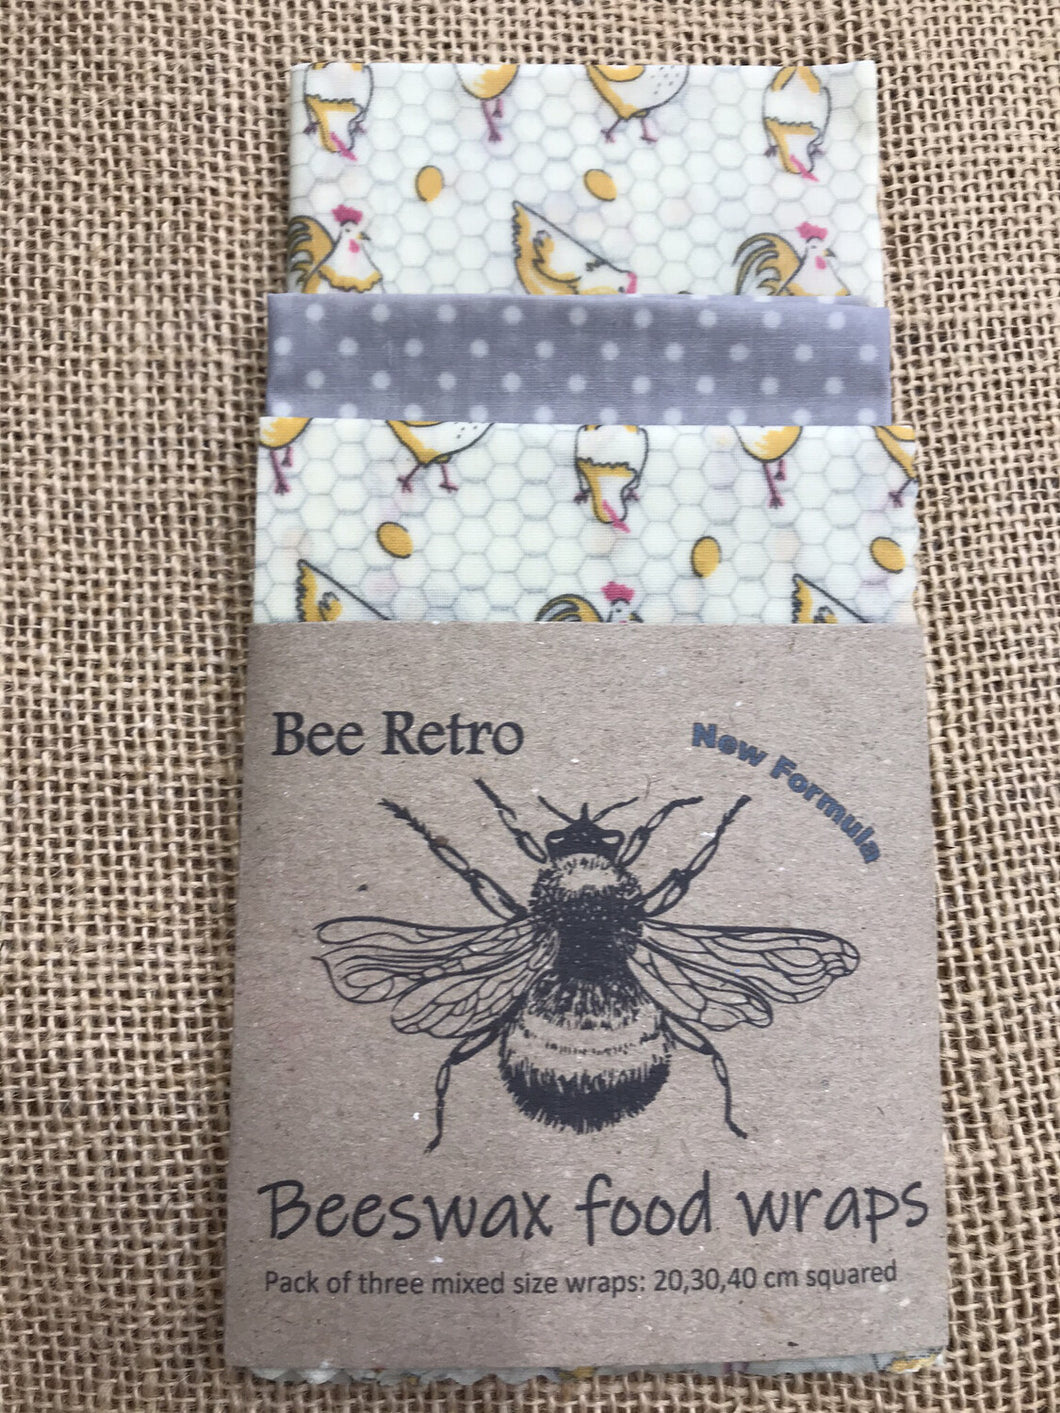 chicken, Beeswax wraps, beeswax food wrap, food wrap, reusable food wrap, best beeswax wrap, beeswax wrap uk, beeswax wrap Cornwall, handmade beeswax wrap, wax food wraps, eco wrap, food wrap, food packaging